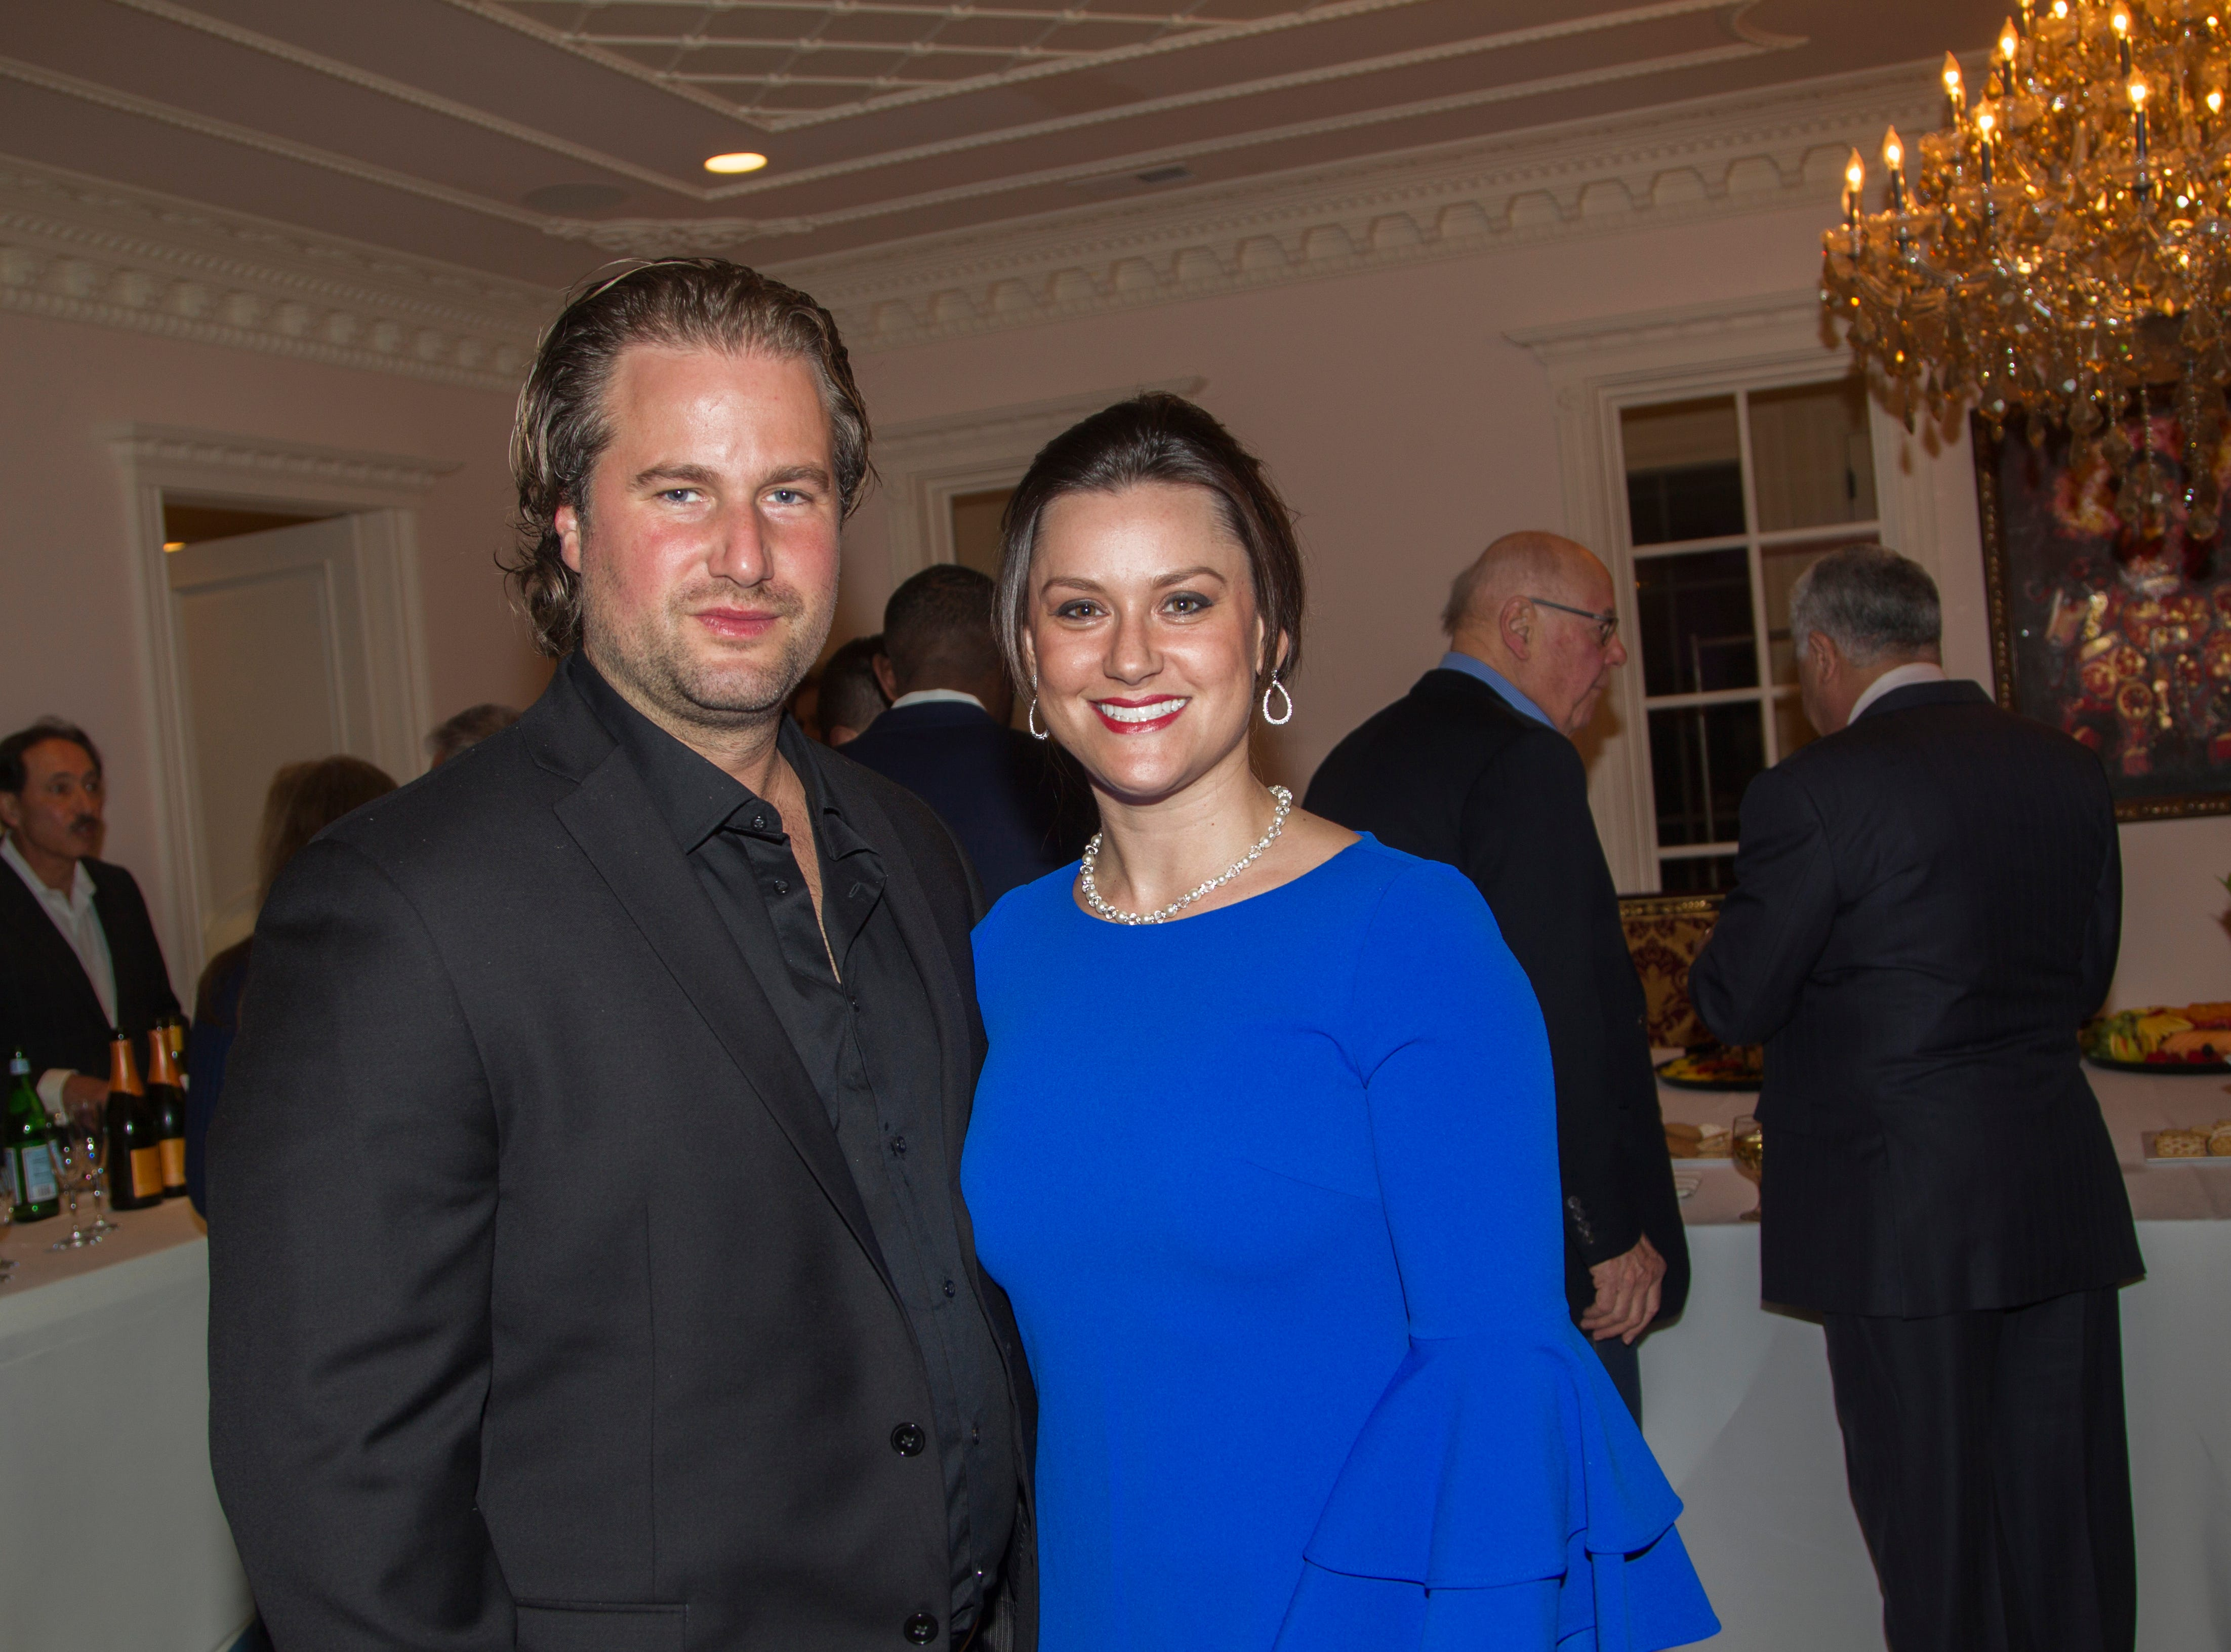 Mike and Caroline Randy. Saddle River Arts Council presents An Evening of Giving Back featureing Eric Genuis in Saddle River. 03/30/2019